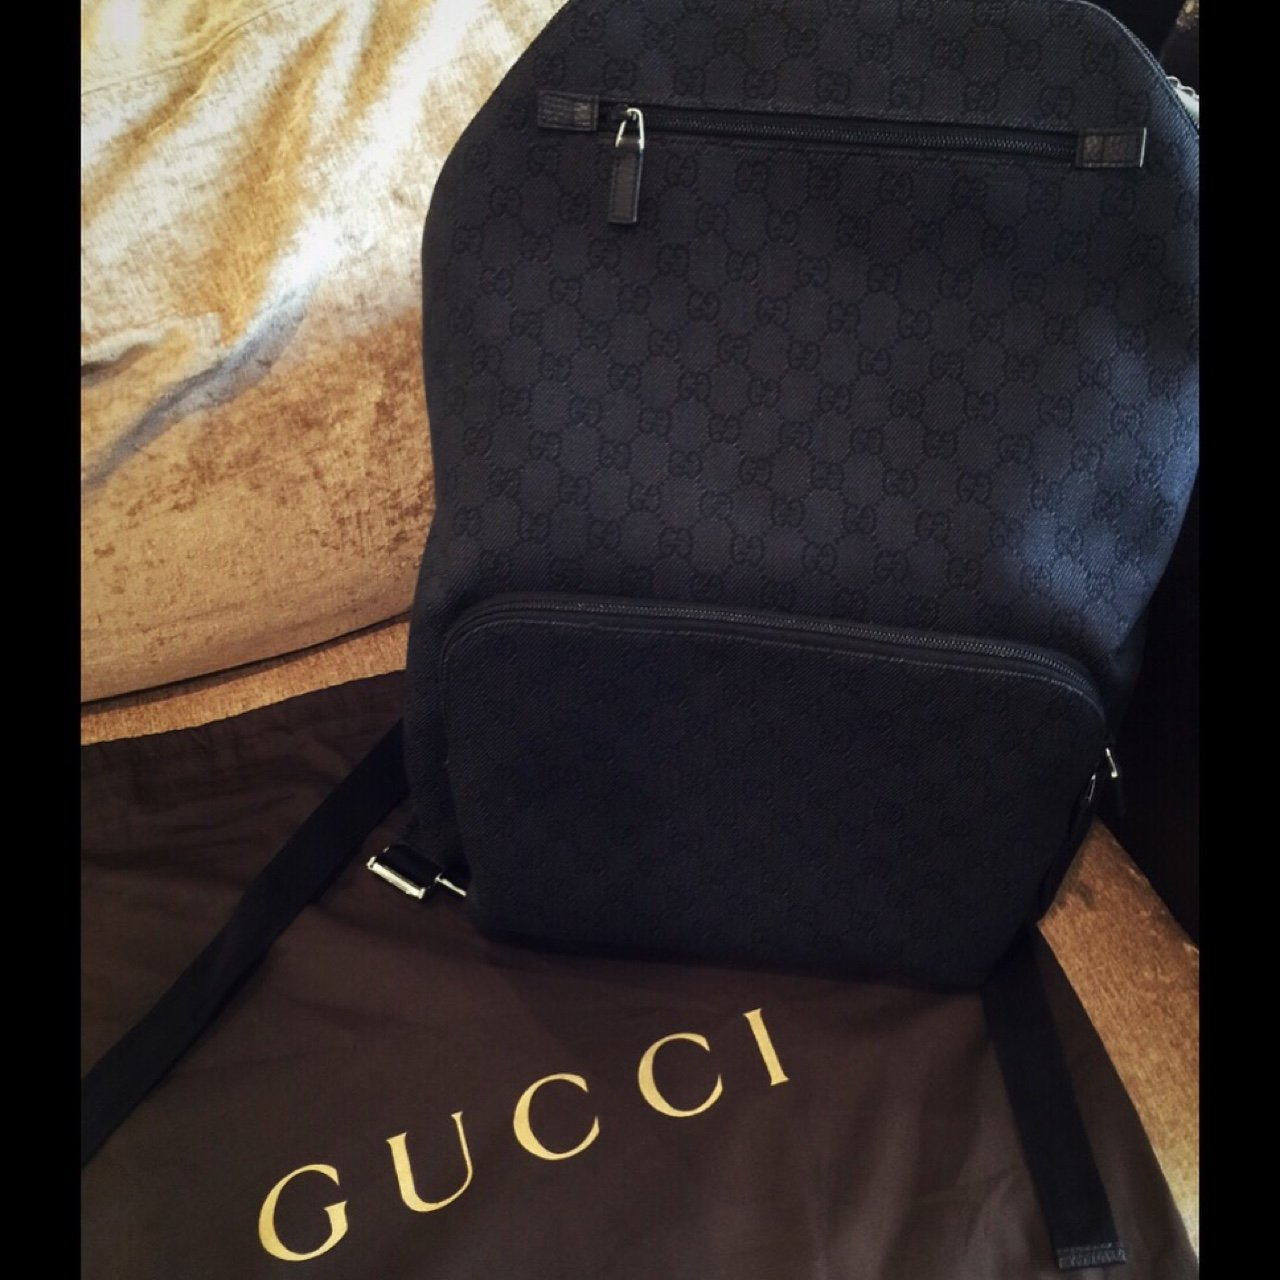 fb13b866a238 Gucci backpack brand new never used  with dust bag. 700  - Depop